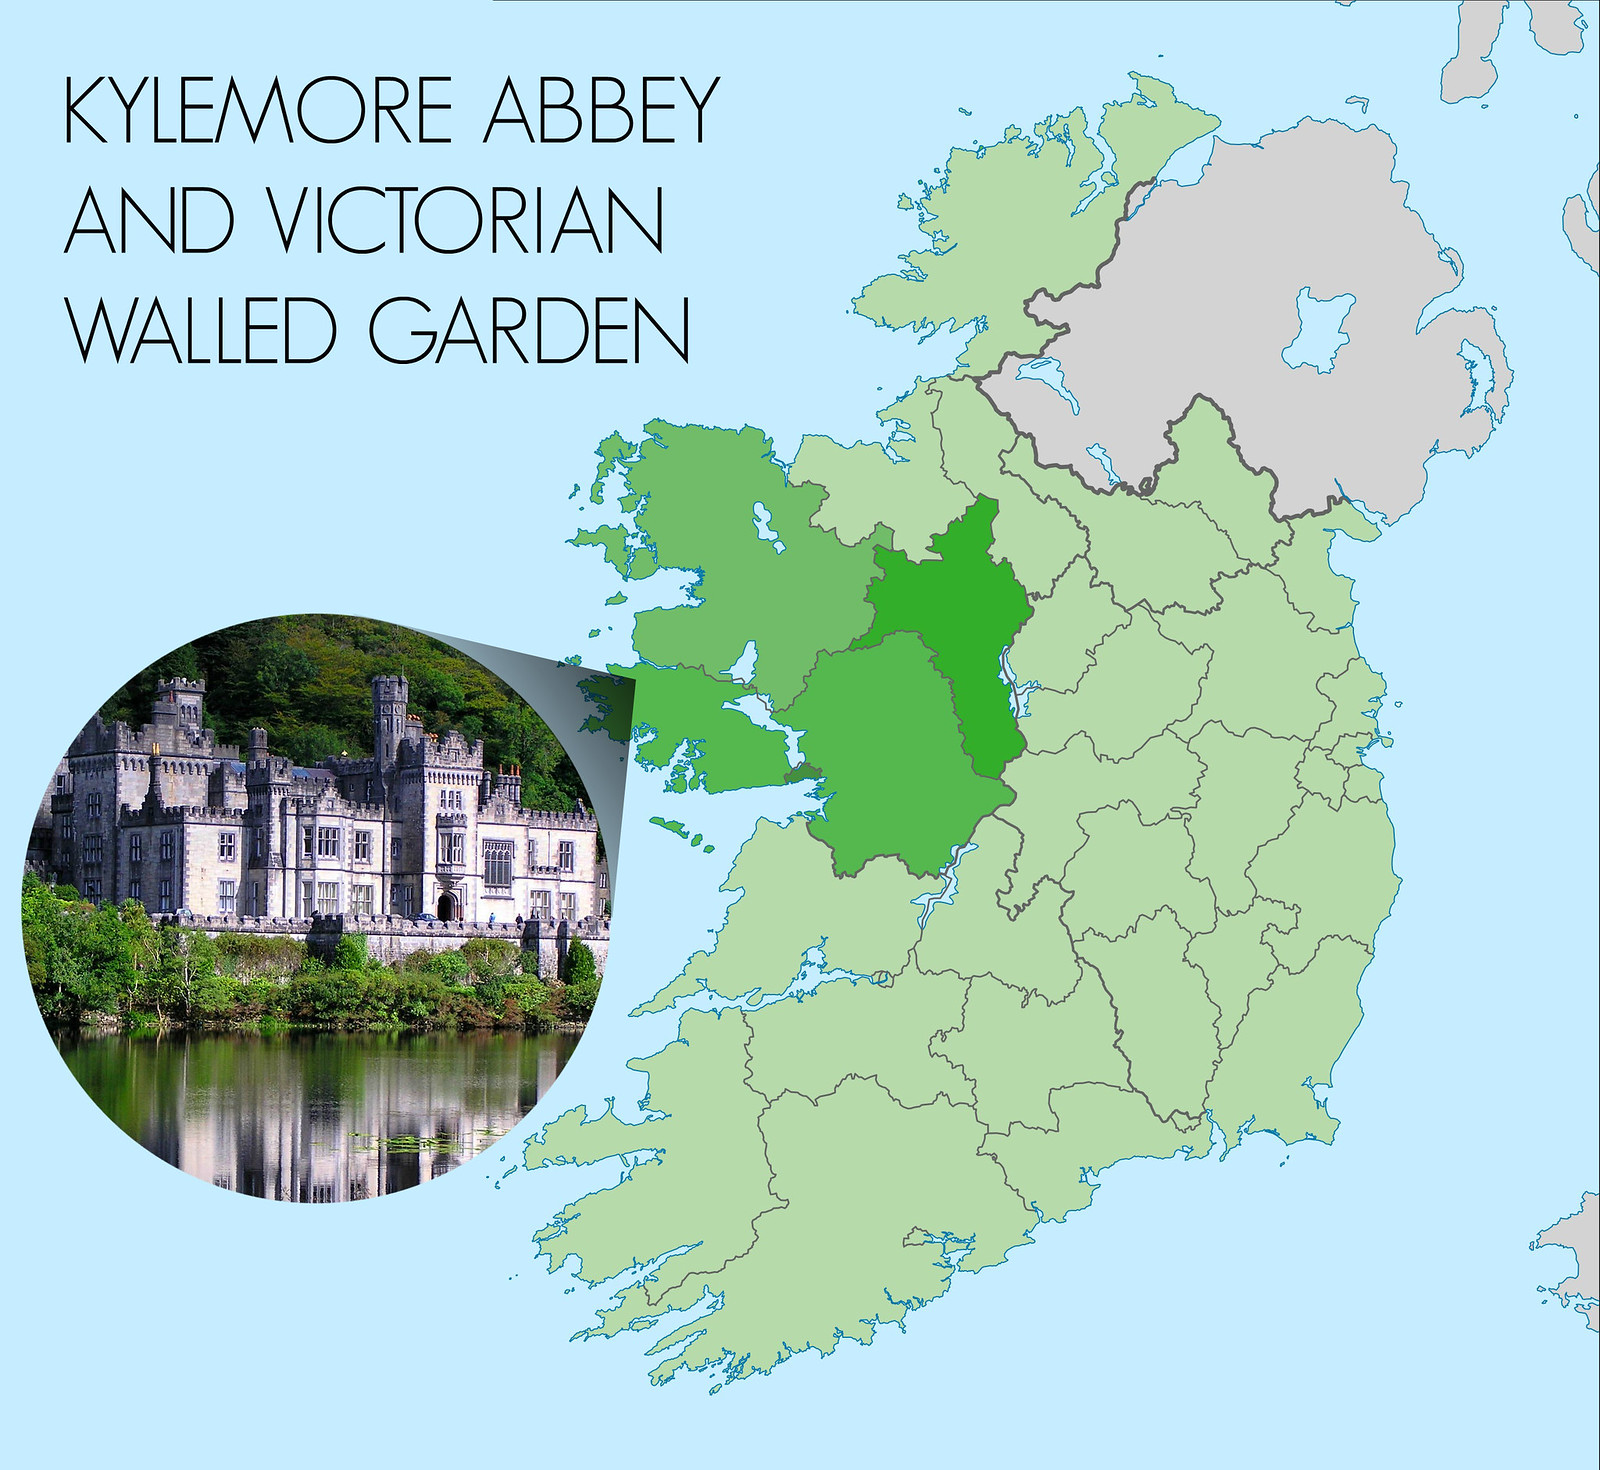 Kylemore Abbey in County Galway on the beautiful west coast of Ireland